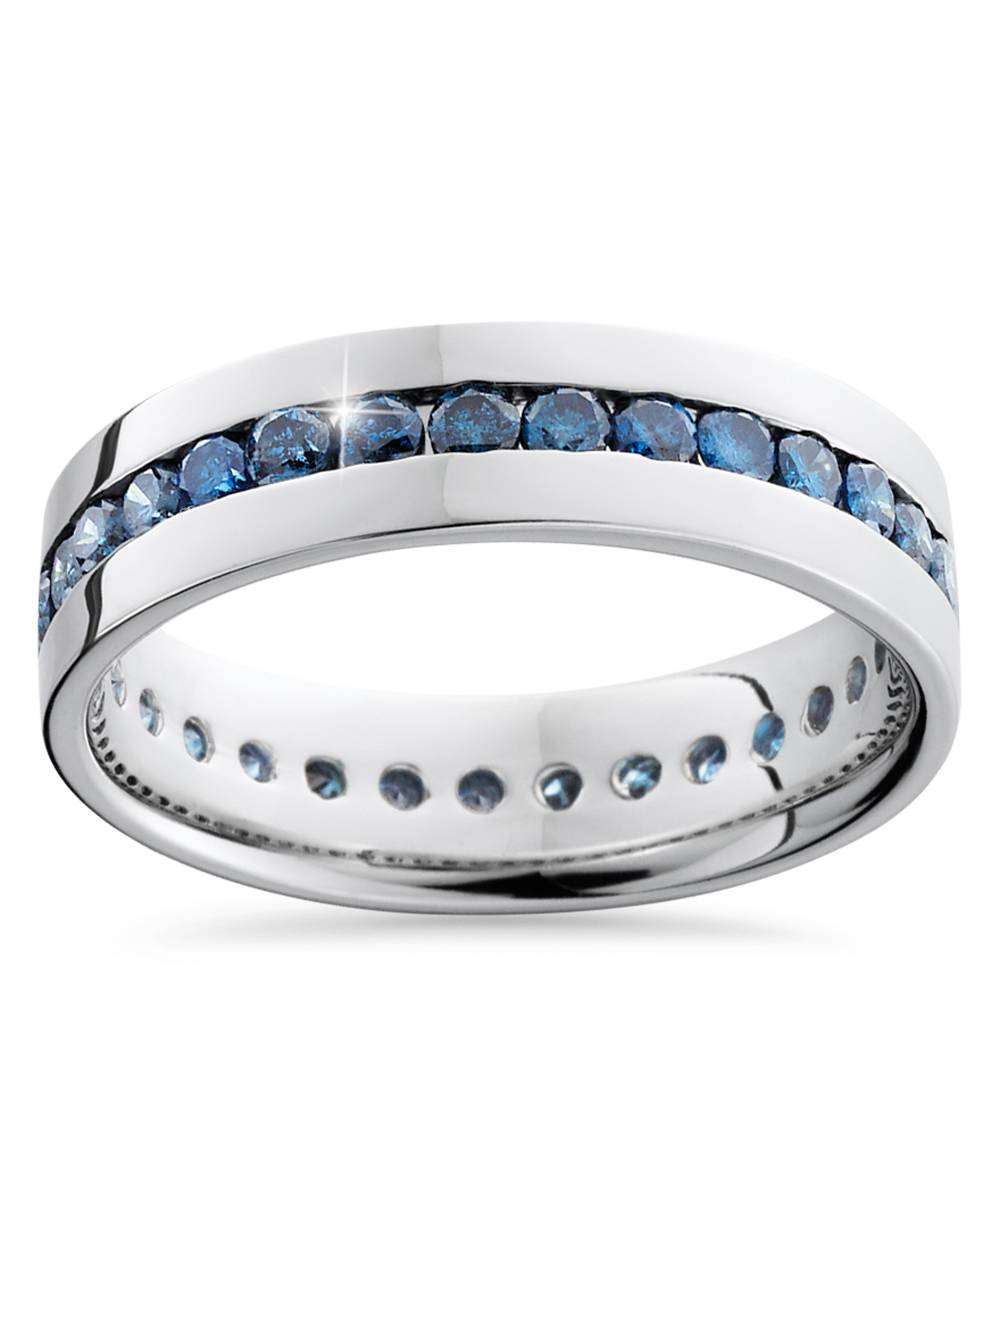 1 1/5ct Treated Blue Diamond Channel Set Eternity Ring 14K White Gold